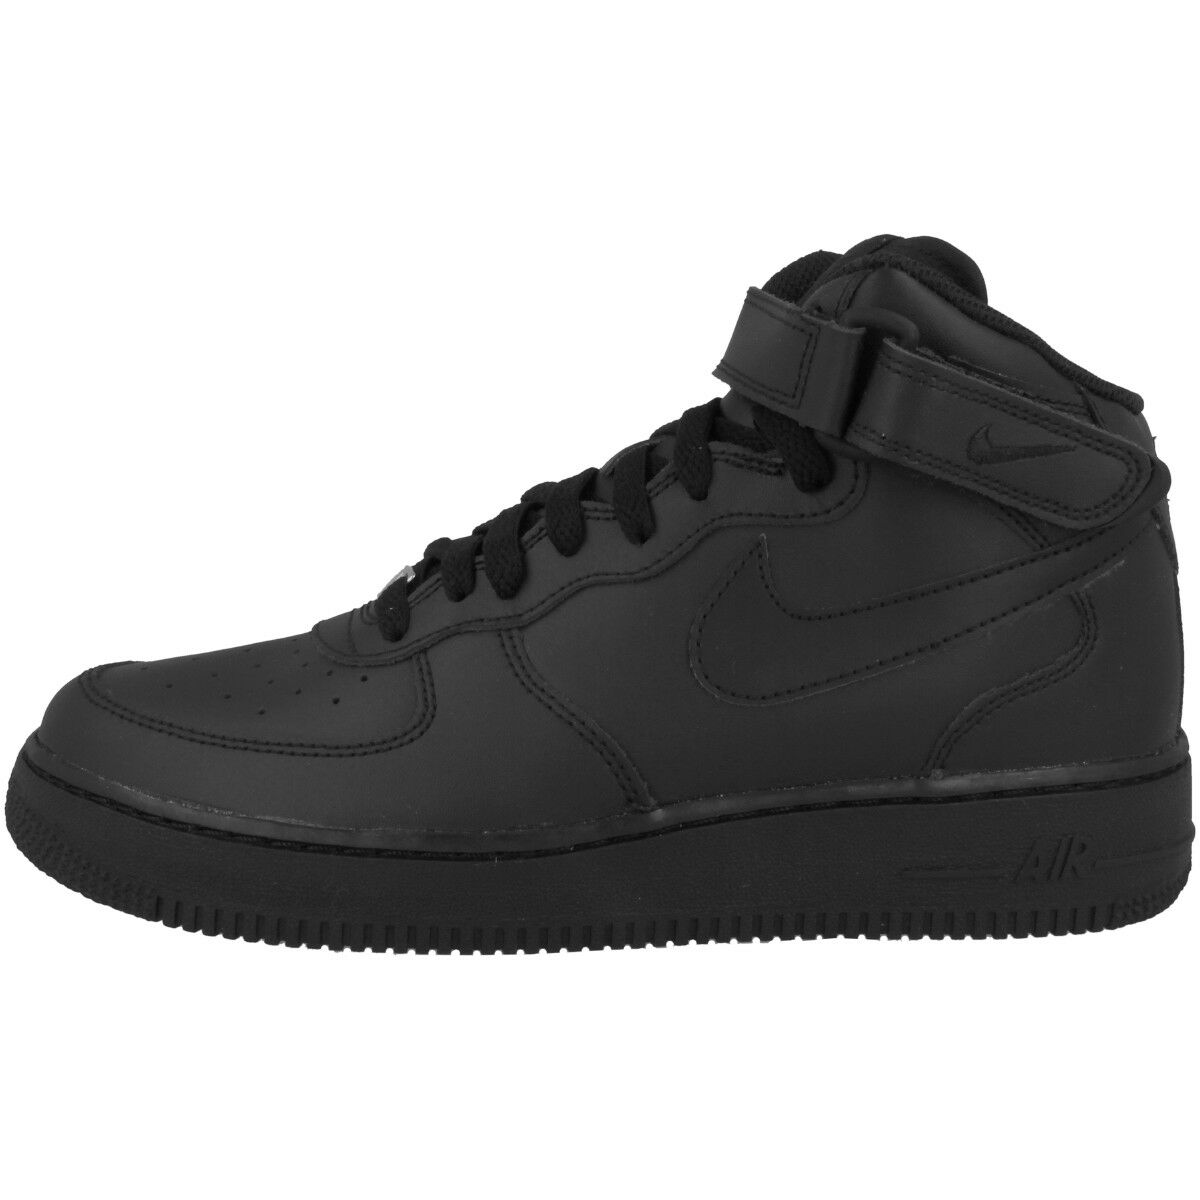 NIKE AIR FORCE 1 MID GS SCHUHE SCHWARZ HIGH TOP SNEAKER 314195-004